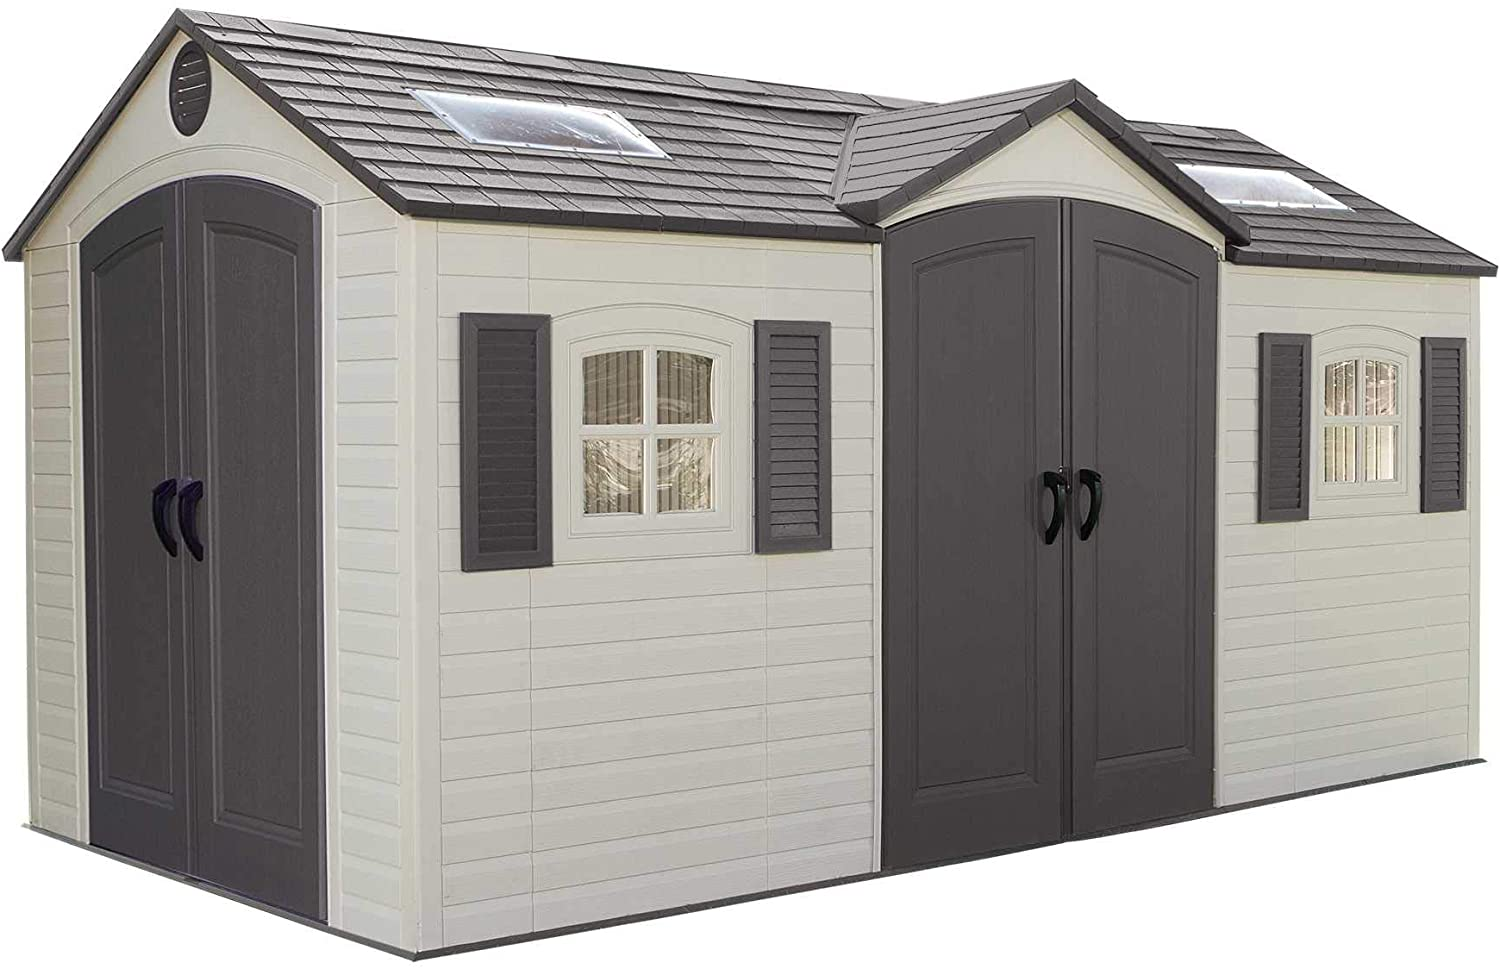 Lifetime 15x8 Outdoor Storage Dual Entry Shed